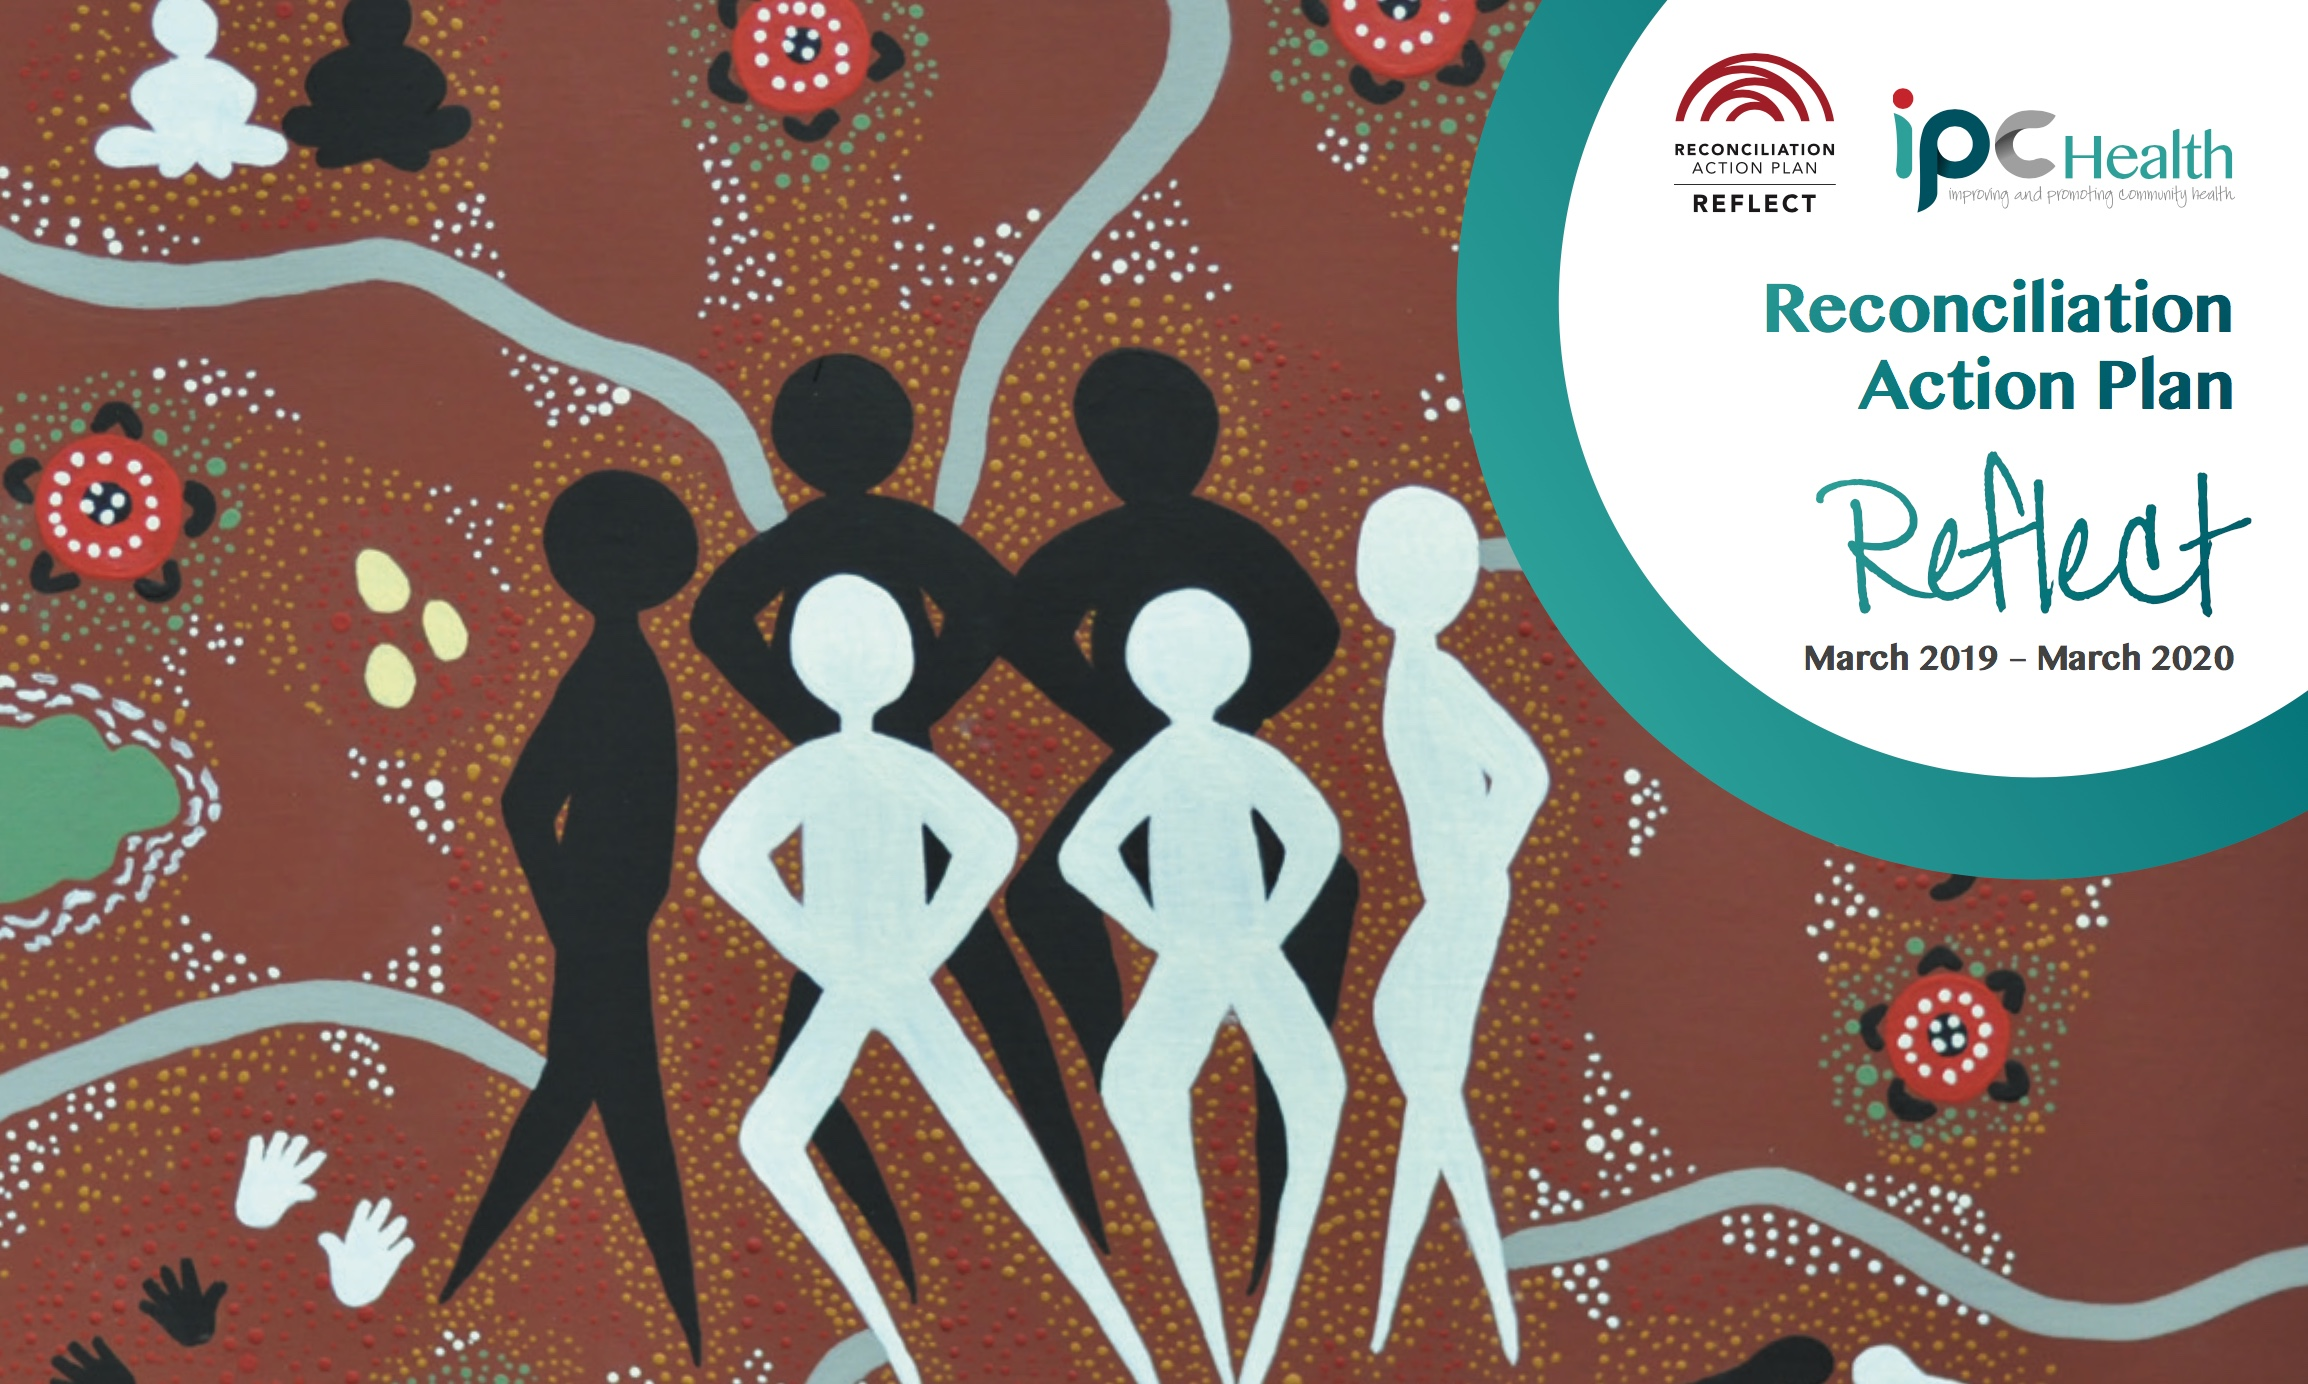 Front page of Reconciliation Action Plan